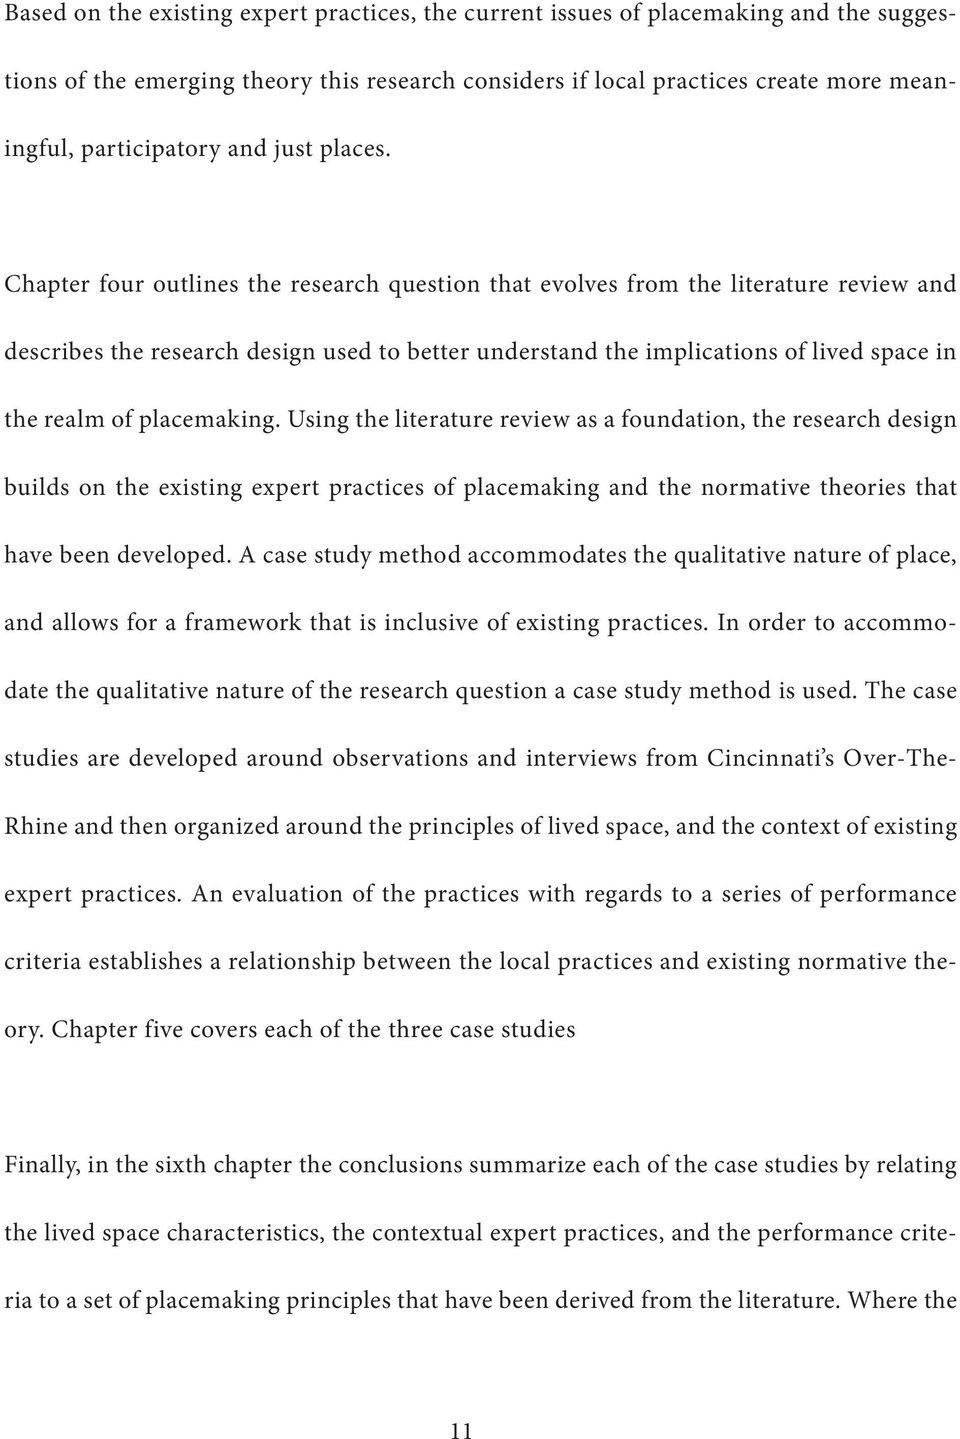 Chapter four outlines the research question that evolves from the literature review and describes the research design used to better understand the implications of lived space in the realm of